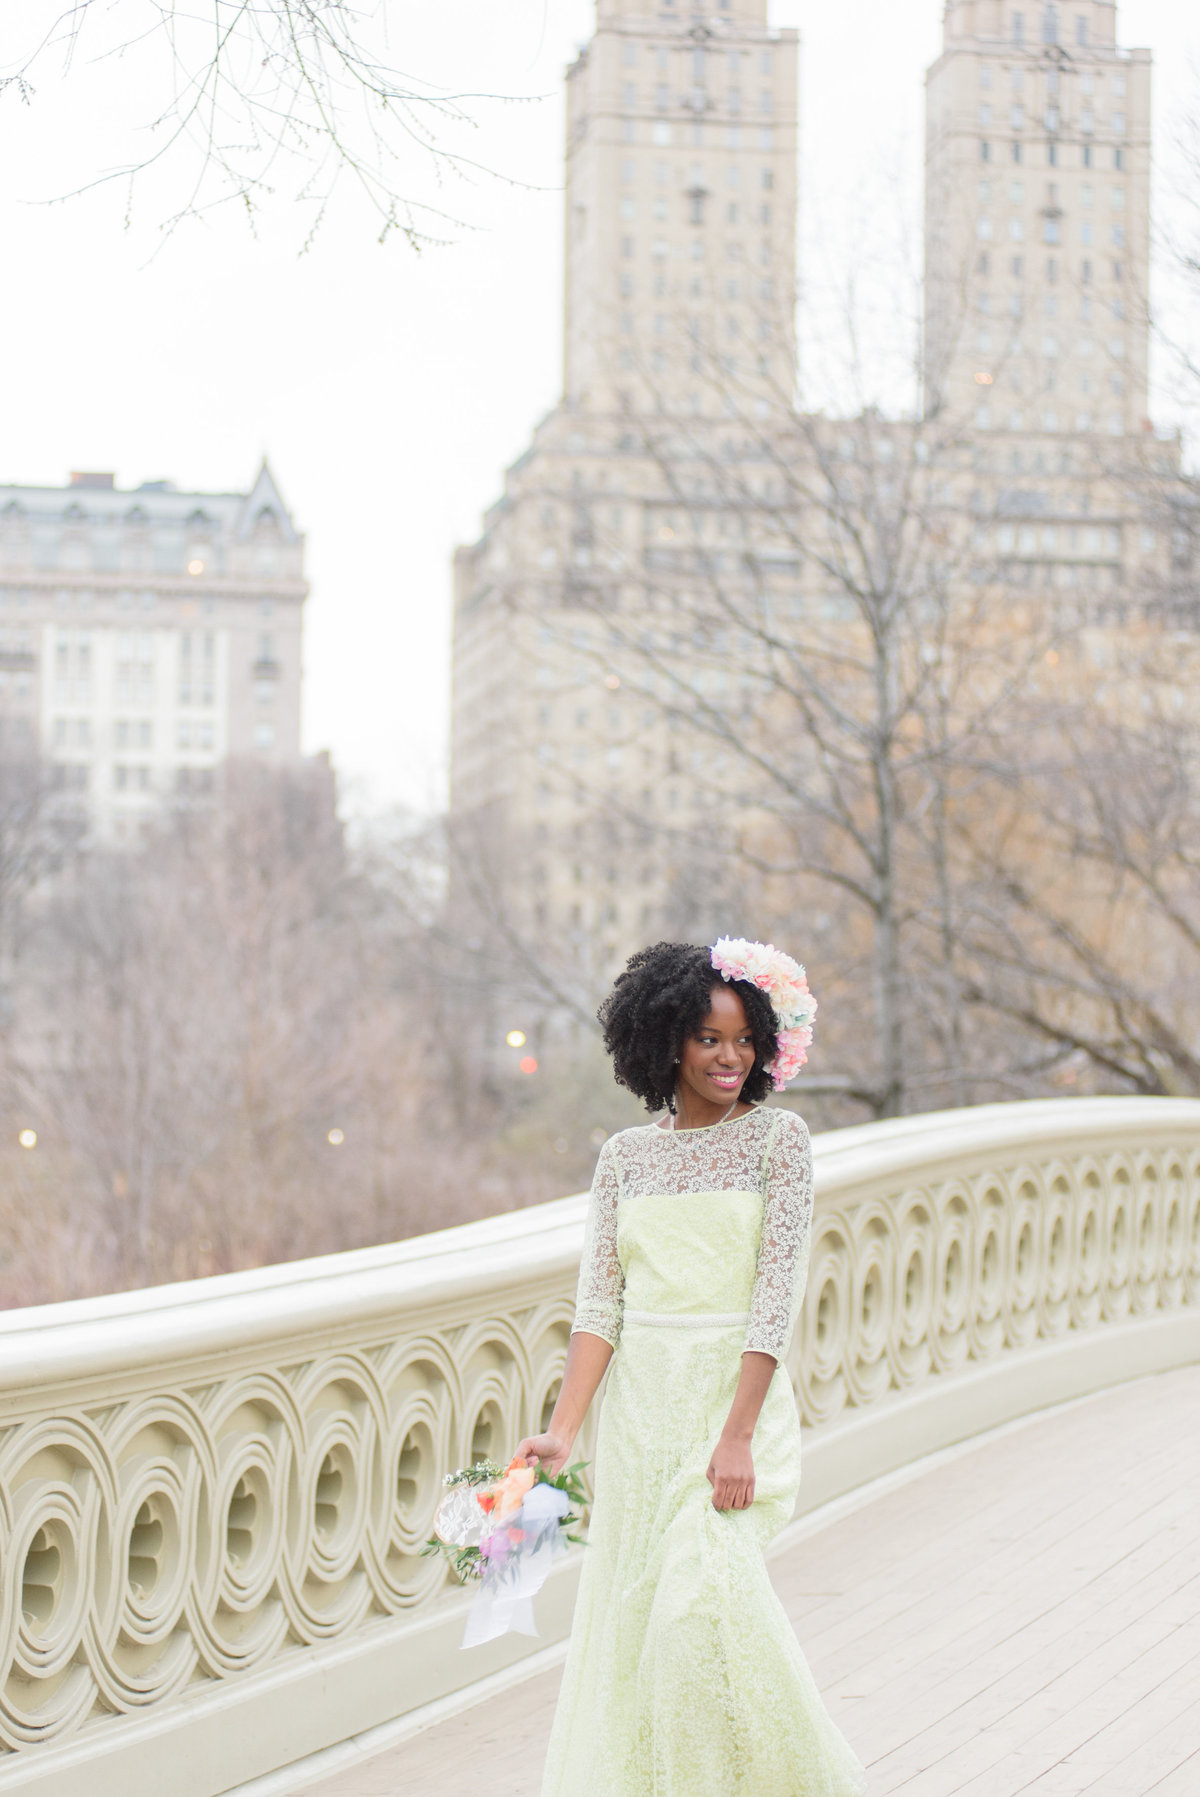 Central Park Wedding Photographer | Bridal Style Inspiration 24